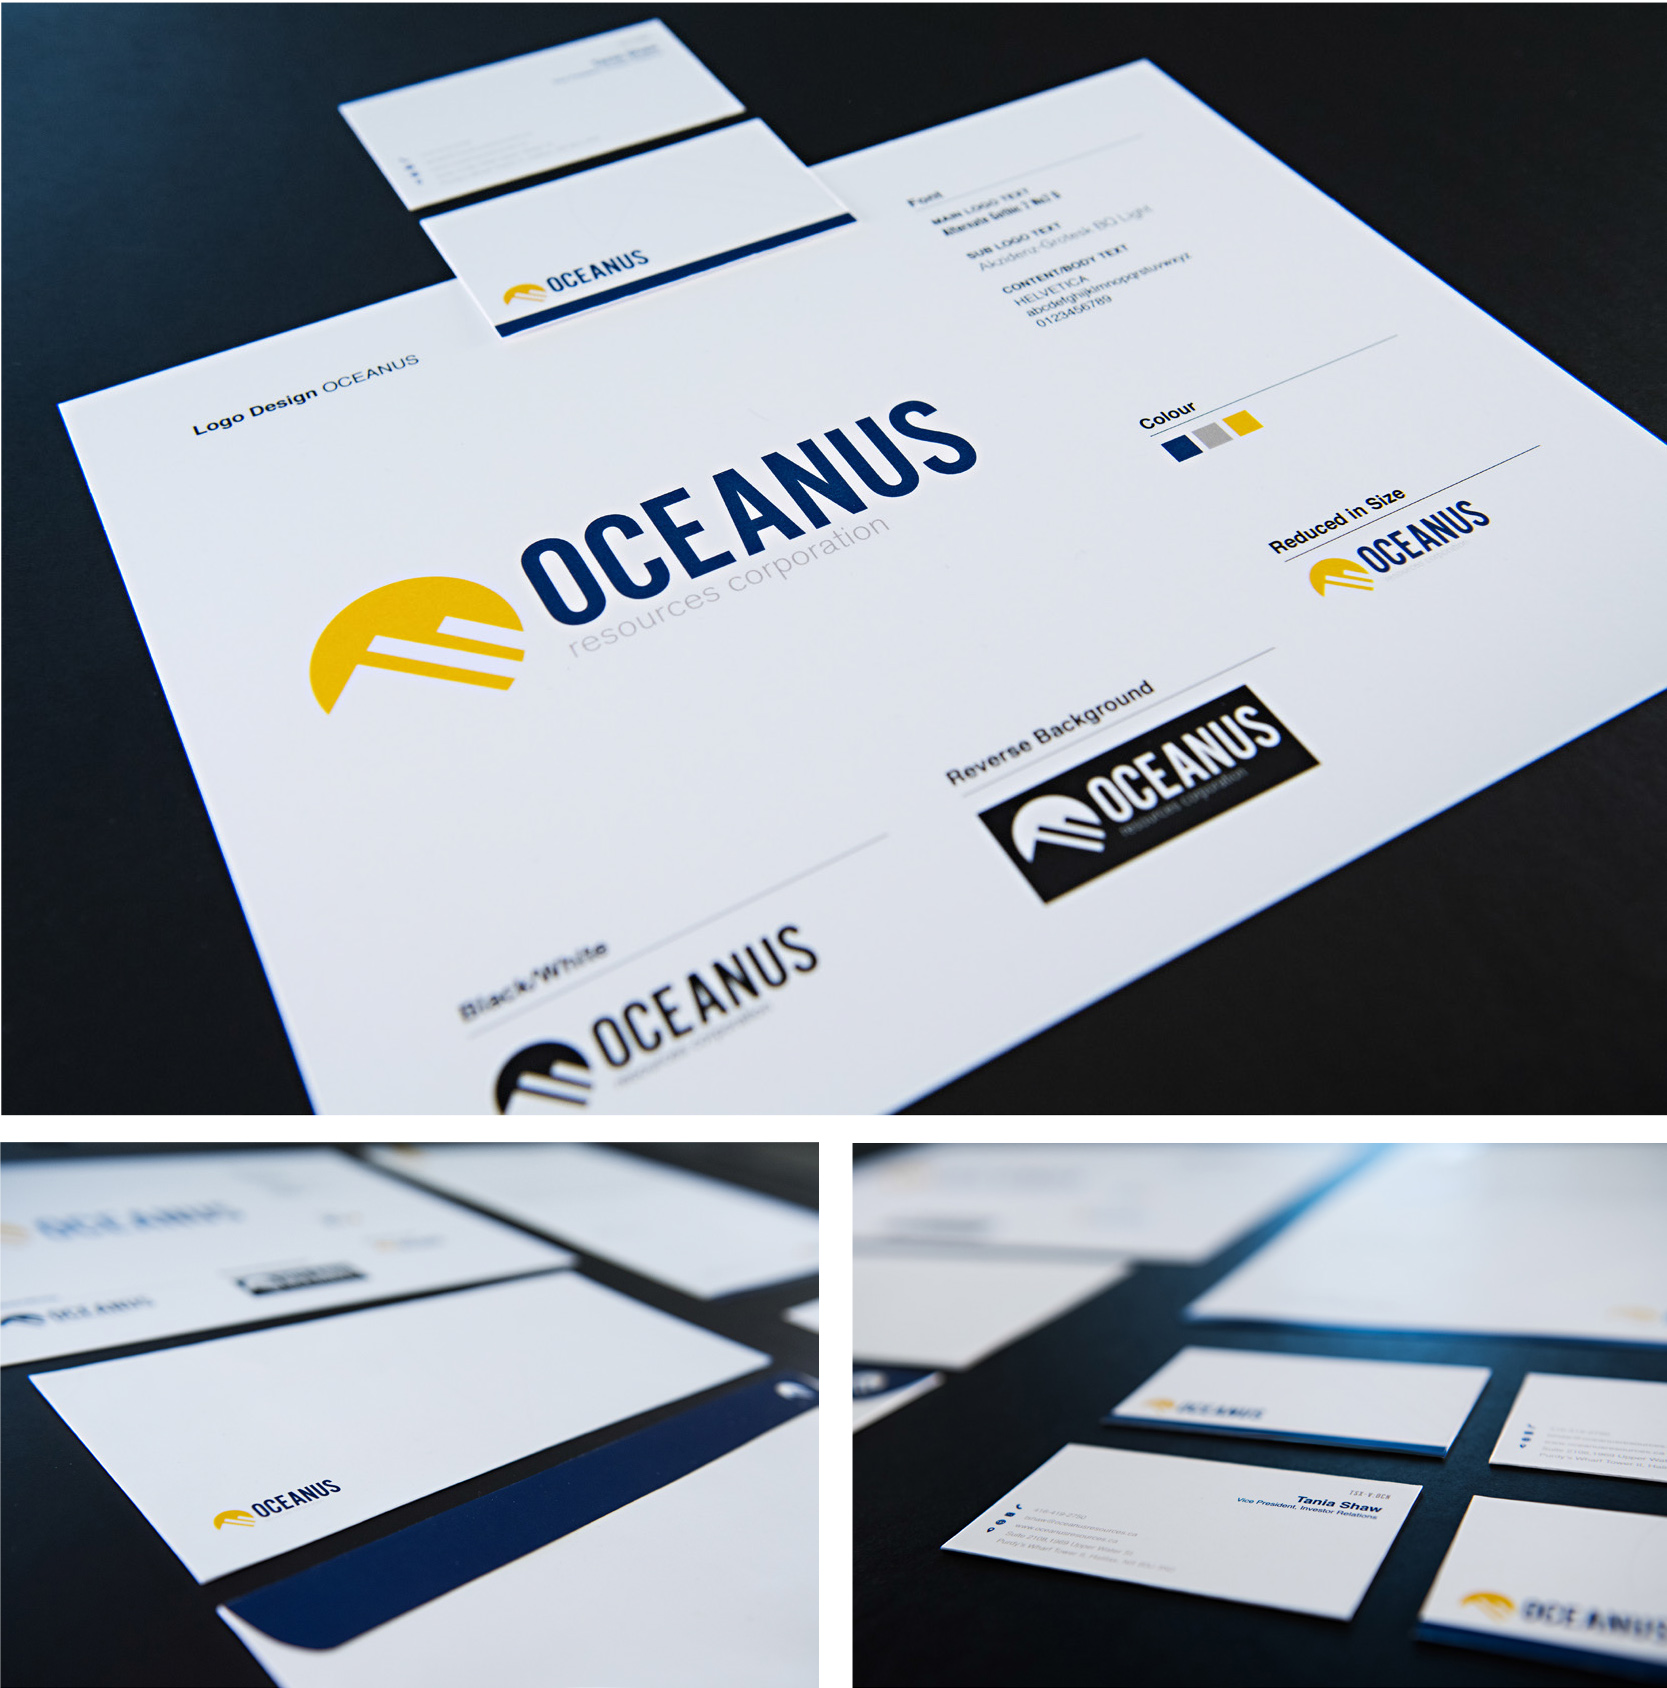 OCEANUS Branding Pitch   Includes Letterhead, Business Cards and Envelopes